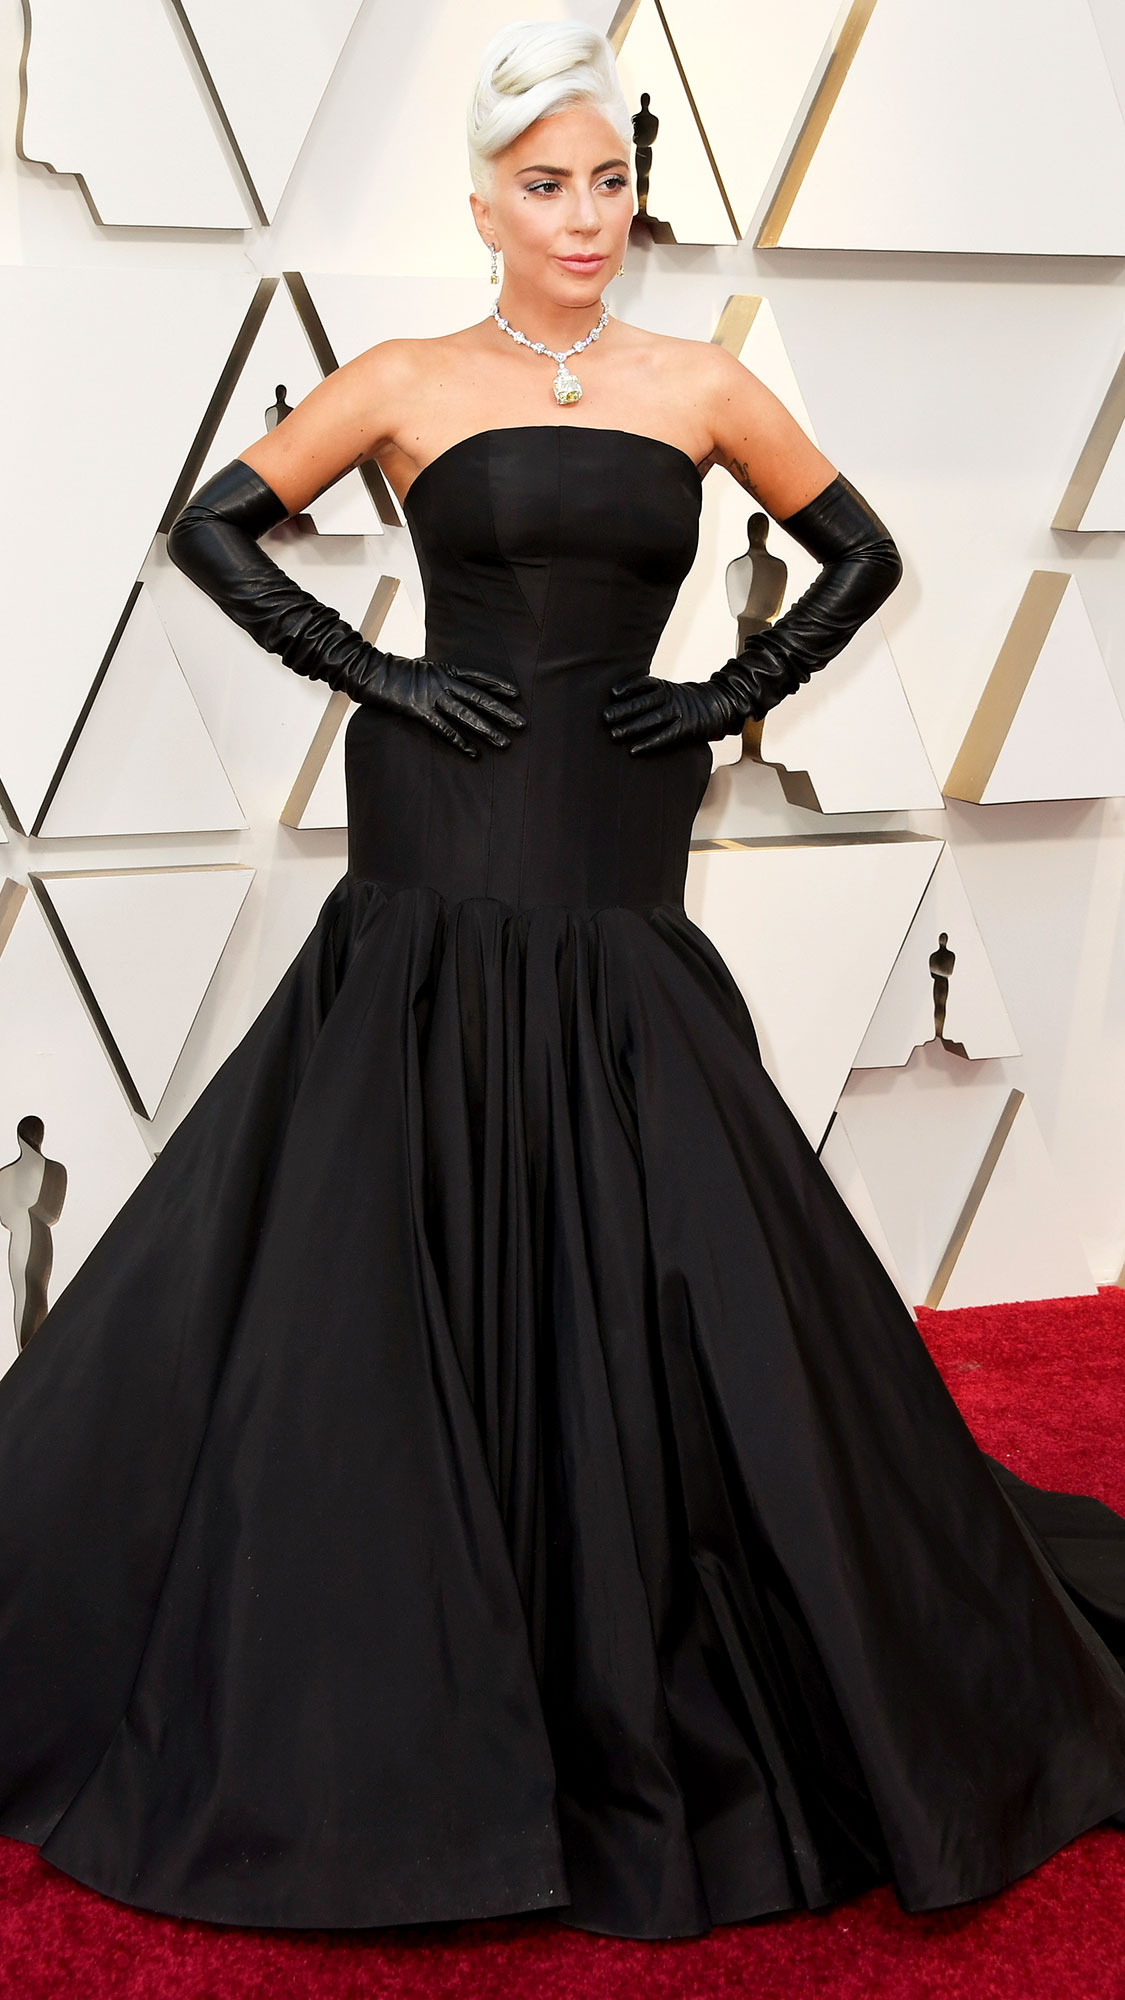 c8073155a Oscars 2019 Red Carpet Fashion: See Celeb Dresses, Gowns